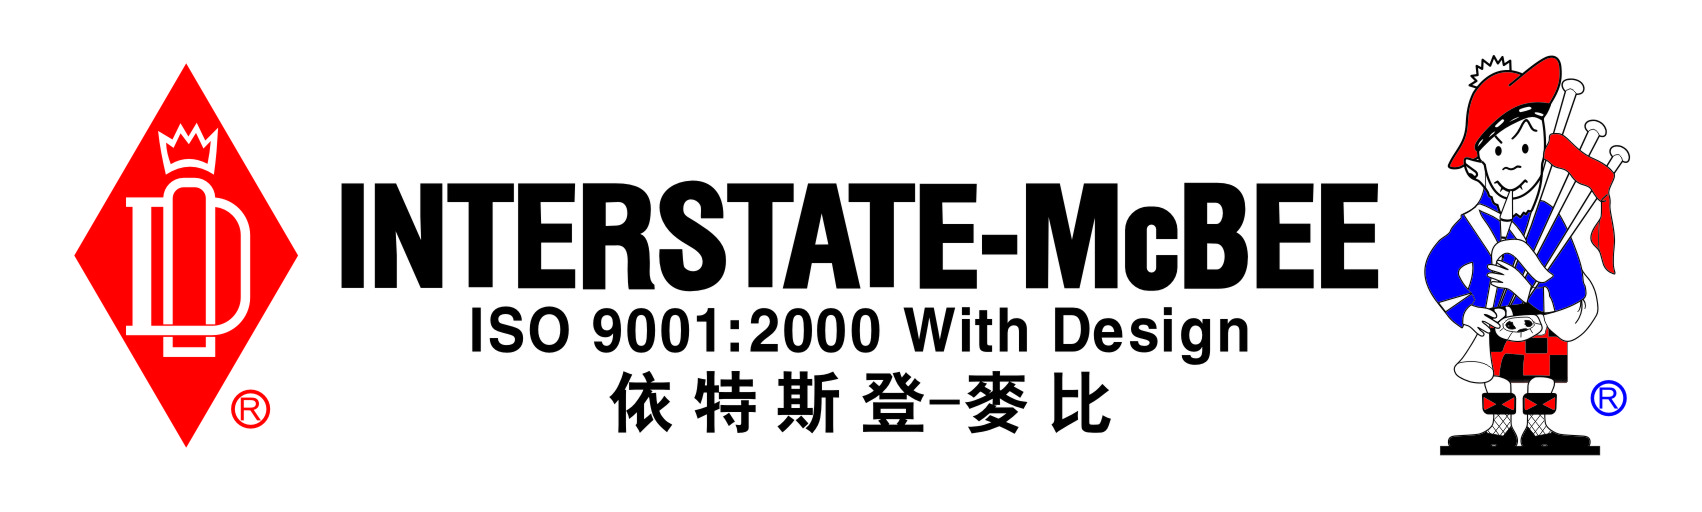 Interstate McBee http://www.interstate-china.com/index.php?mid=4&smid=4&cid=9&postid=9